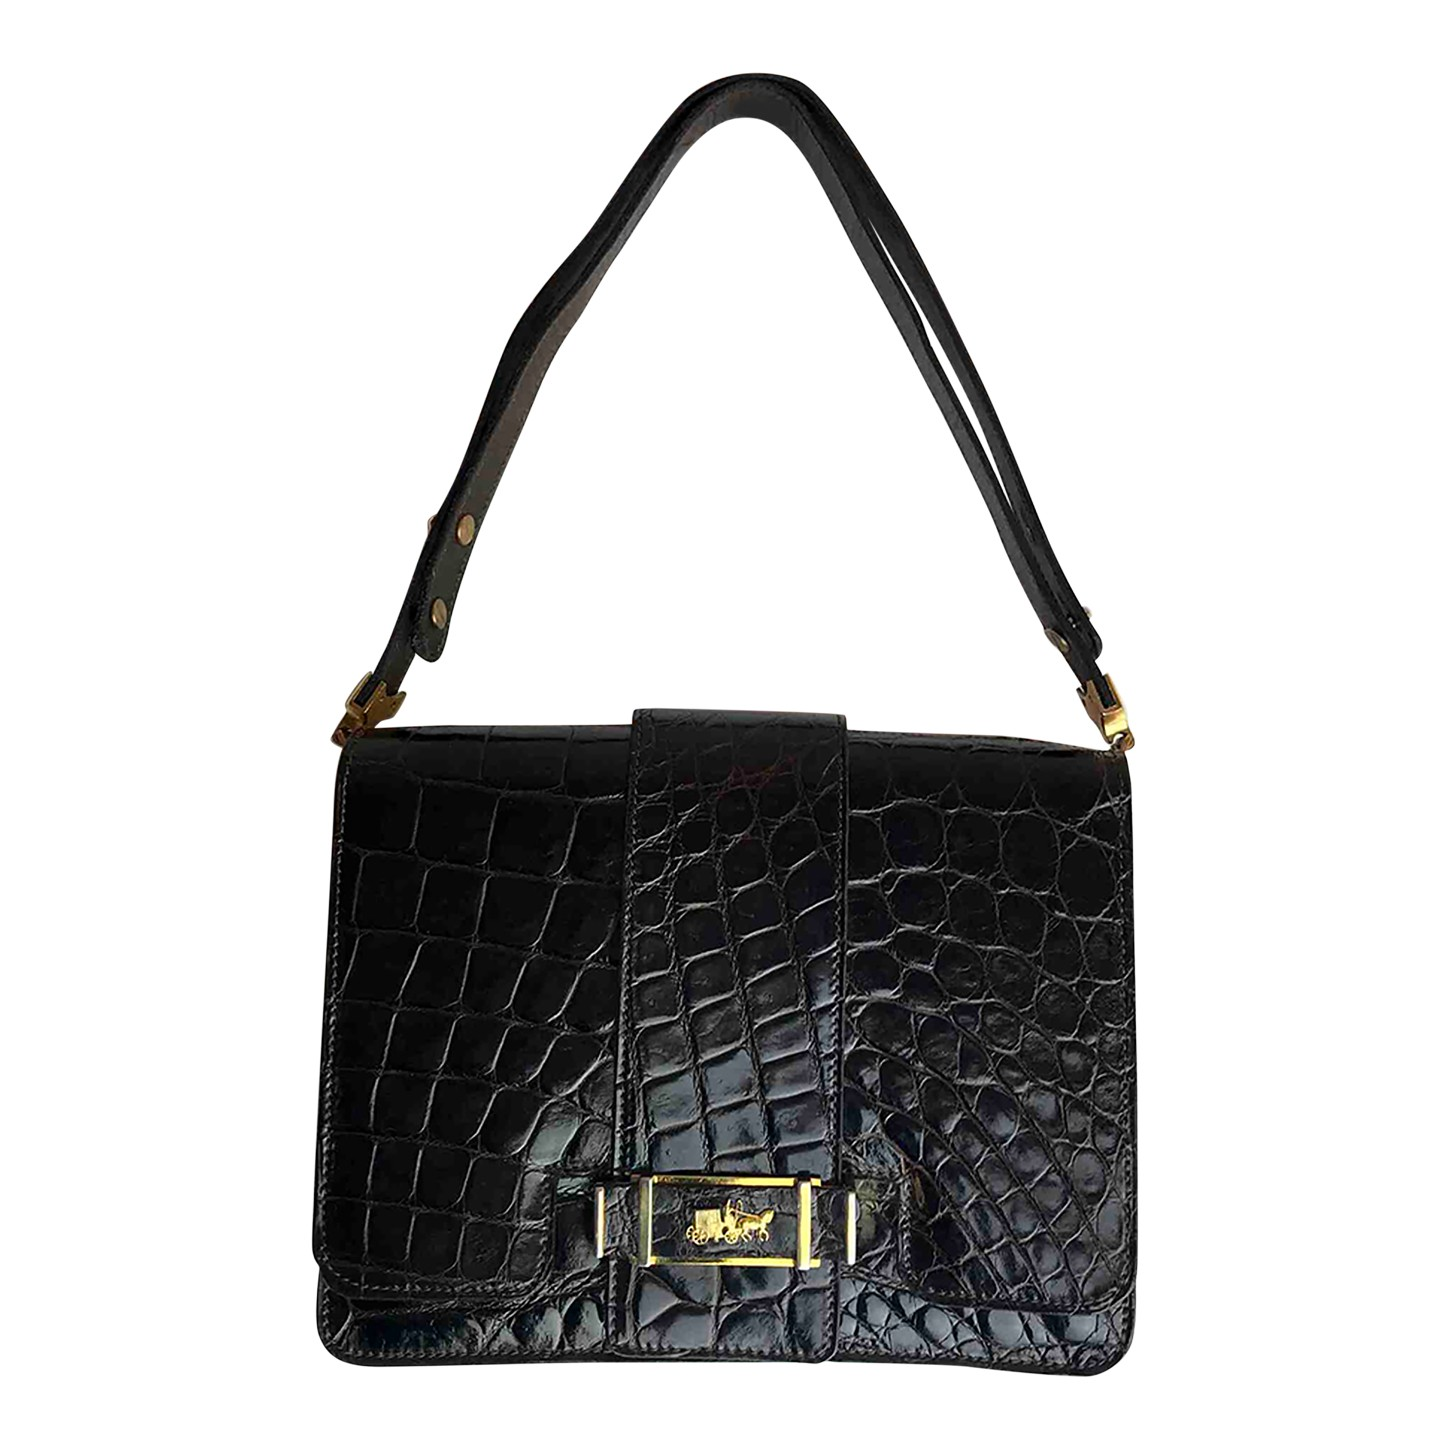 Sac en crocodile